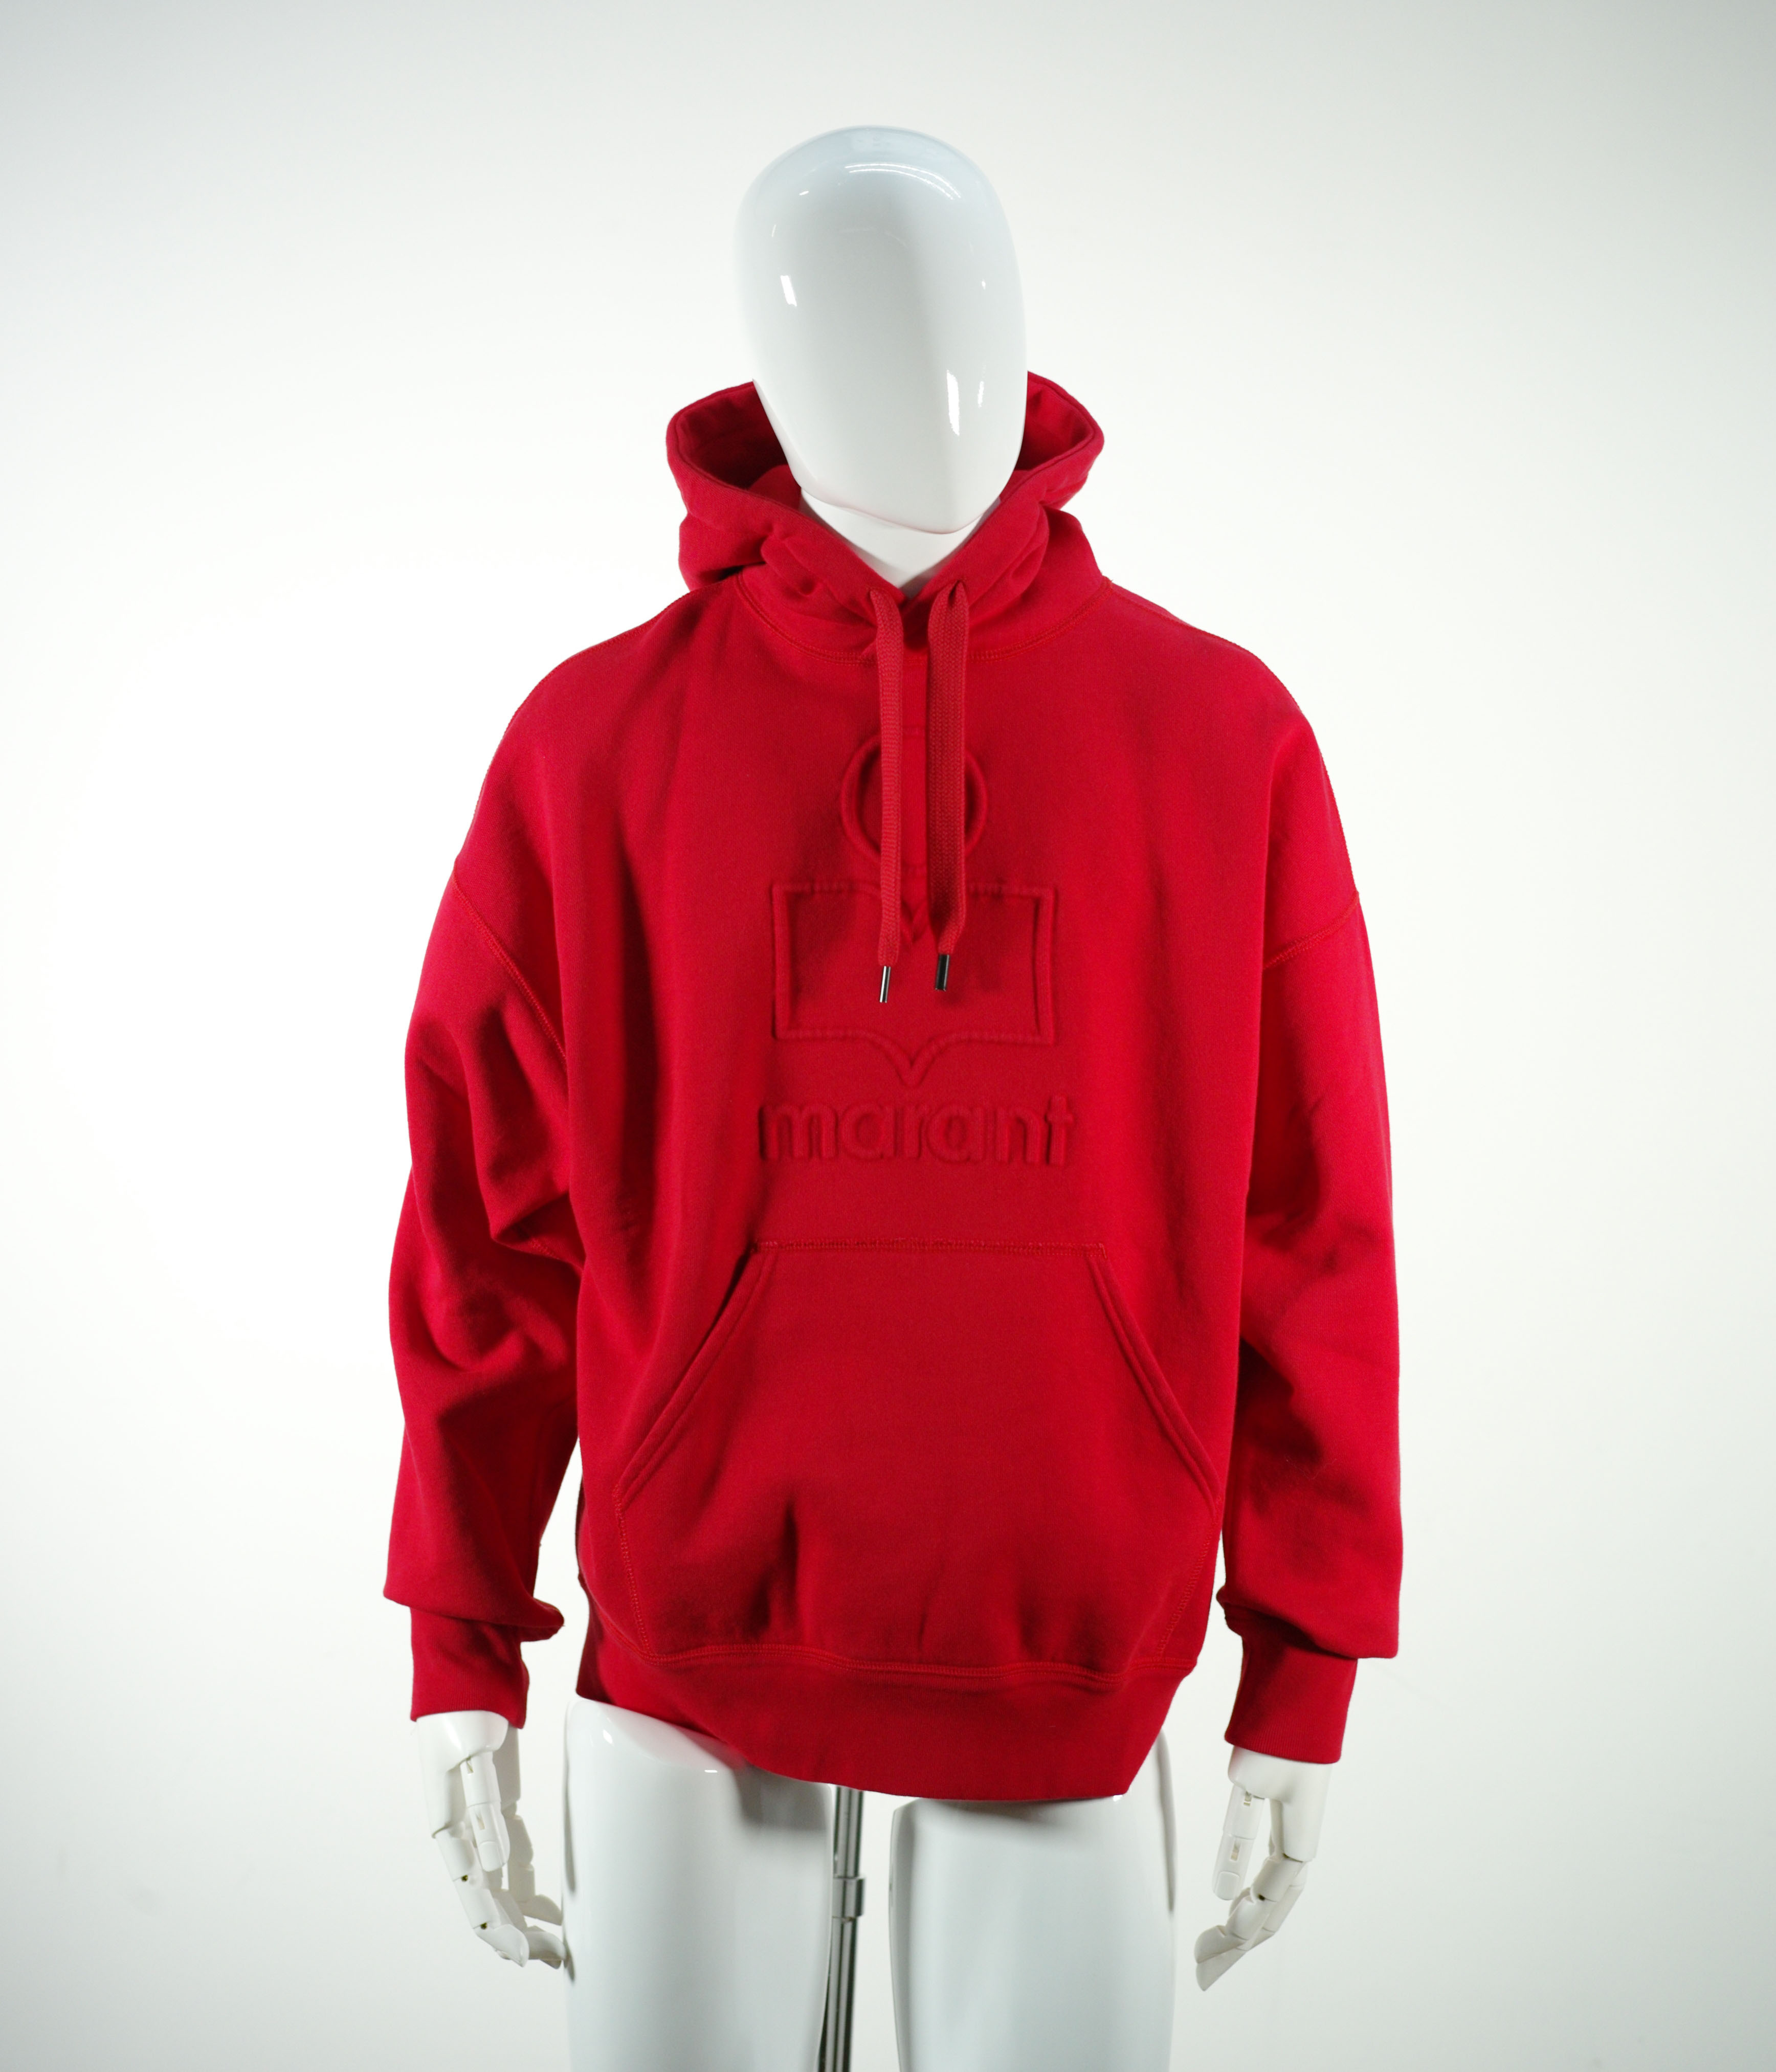 ISABEL MARANT MILEY SWEAT SHIRT RED